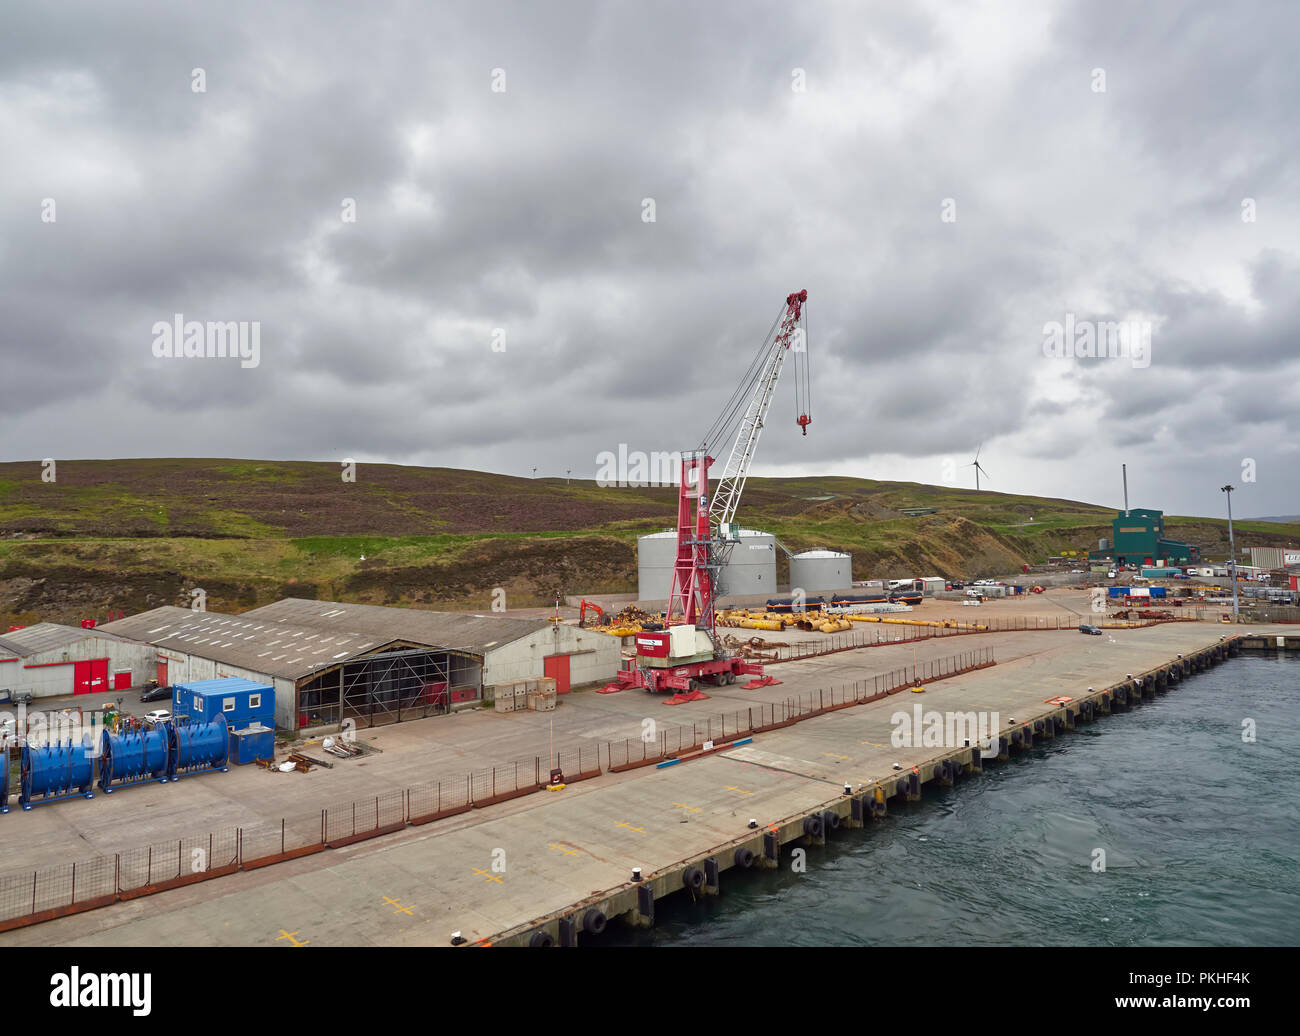 The working Peterson Quay in the town of Lerwick, with a fenced off working area with a mobile Crane.Shetland Islands, Scotland, UK - Stock Image